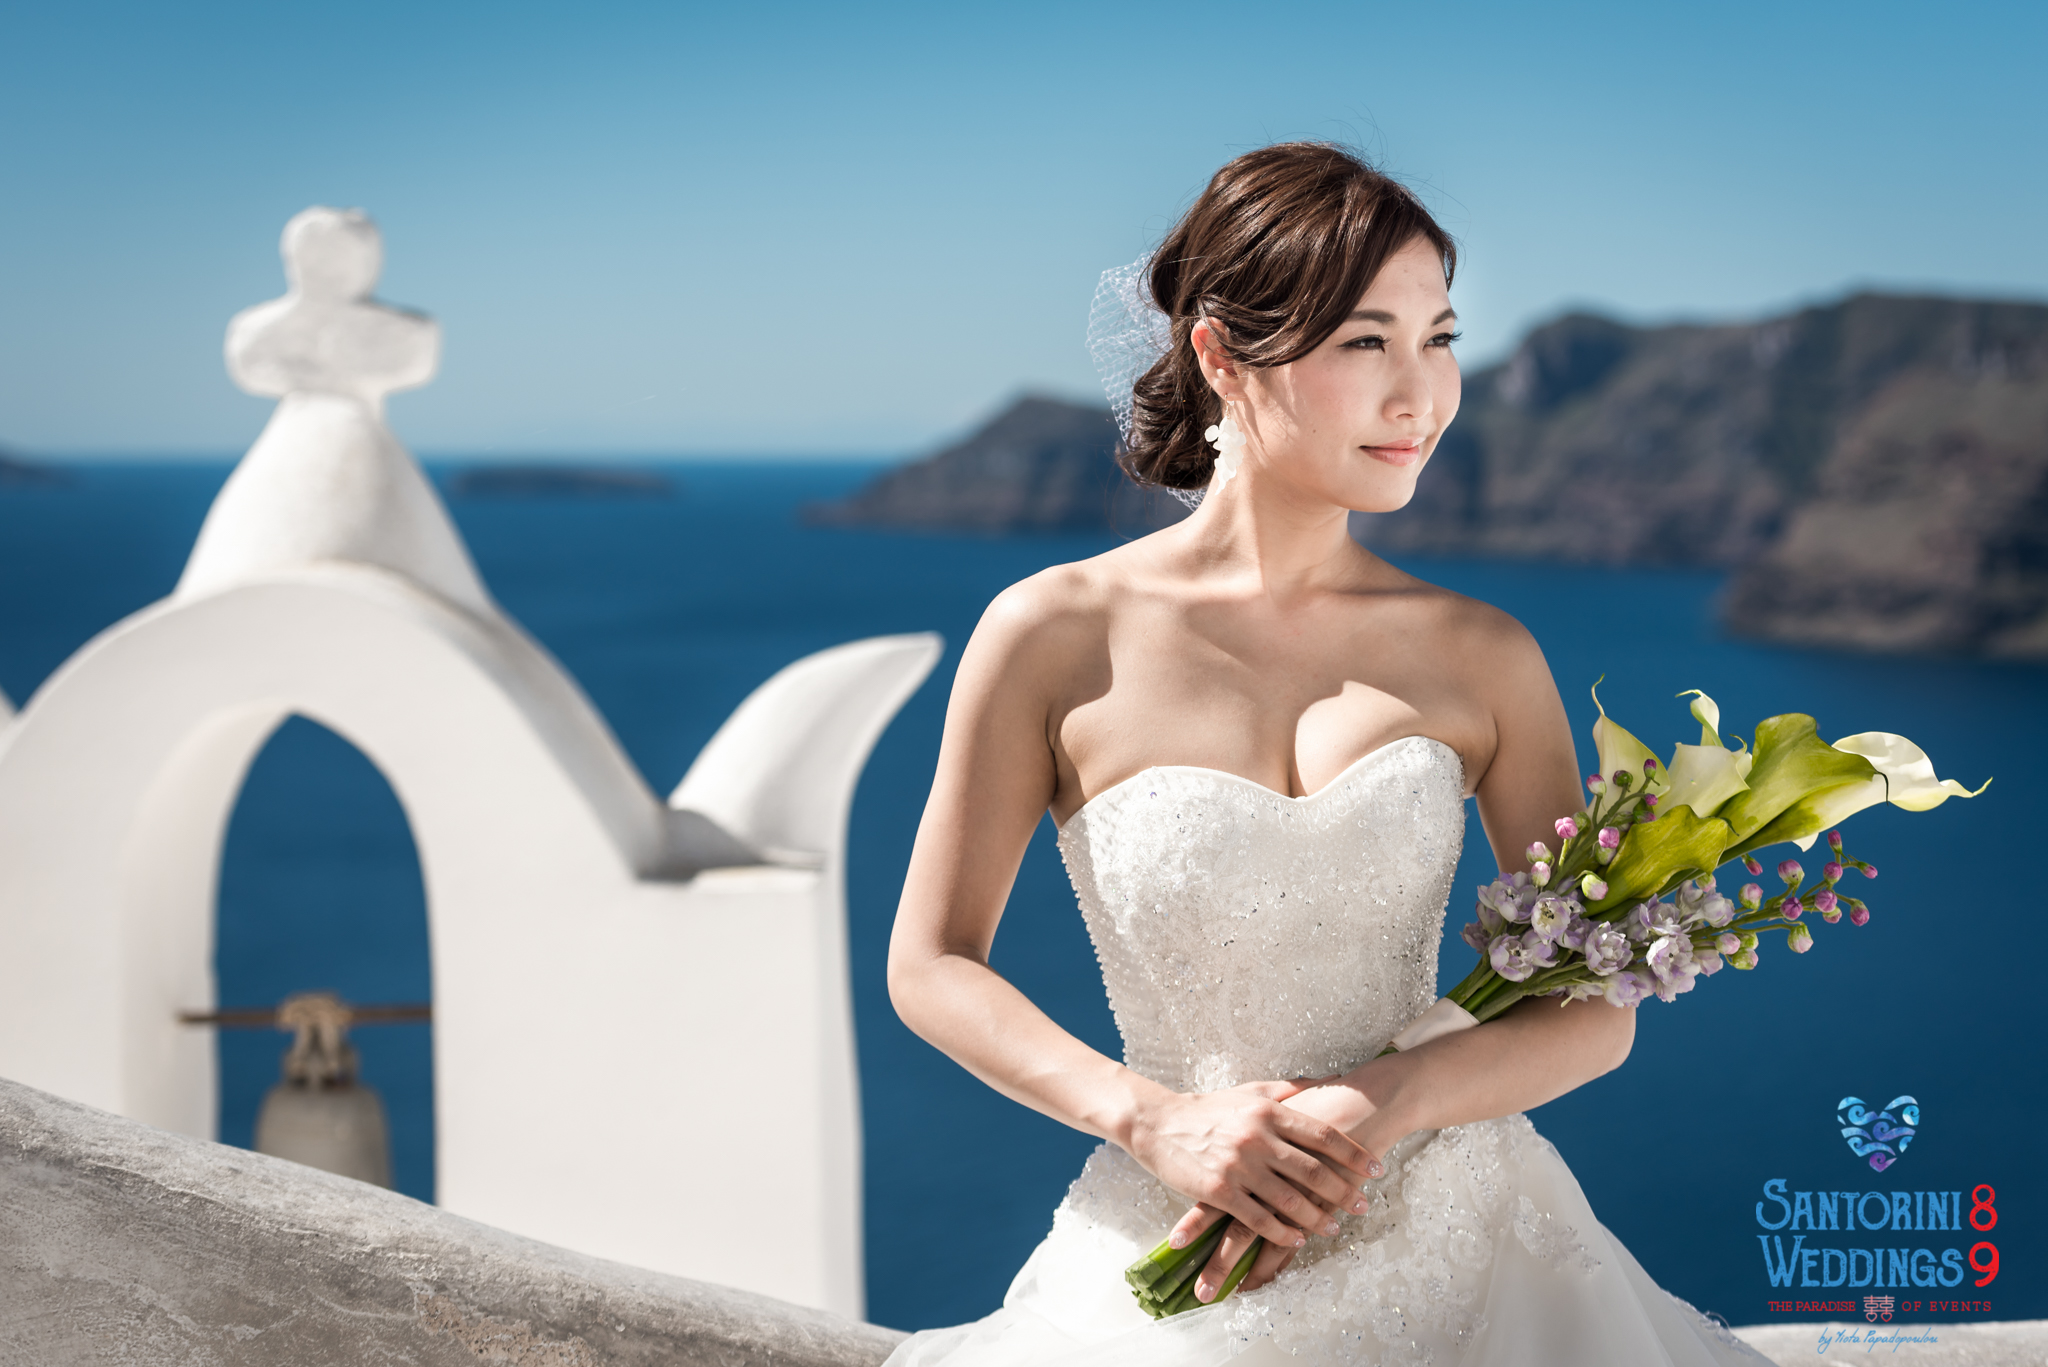 mr-mrs-kojo-photo-shooting-by-santorini8-weddings9-dragons-group-6.jpg